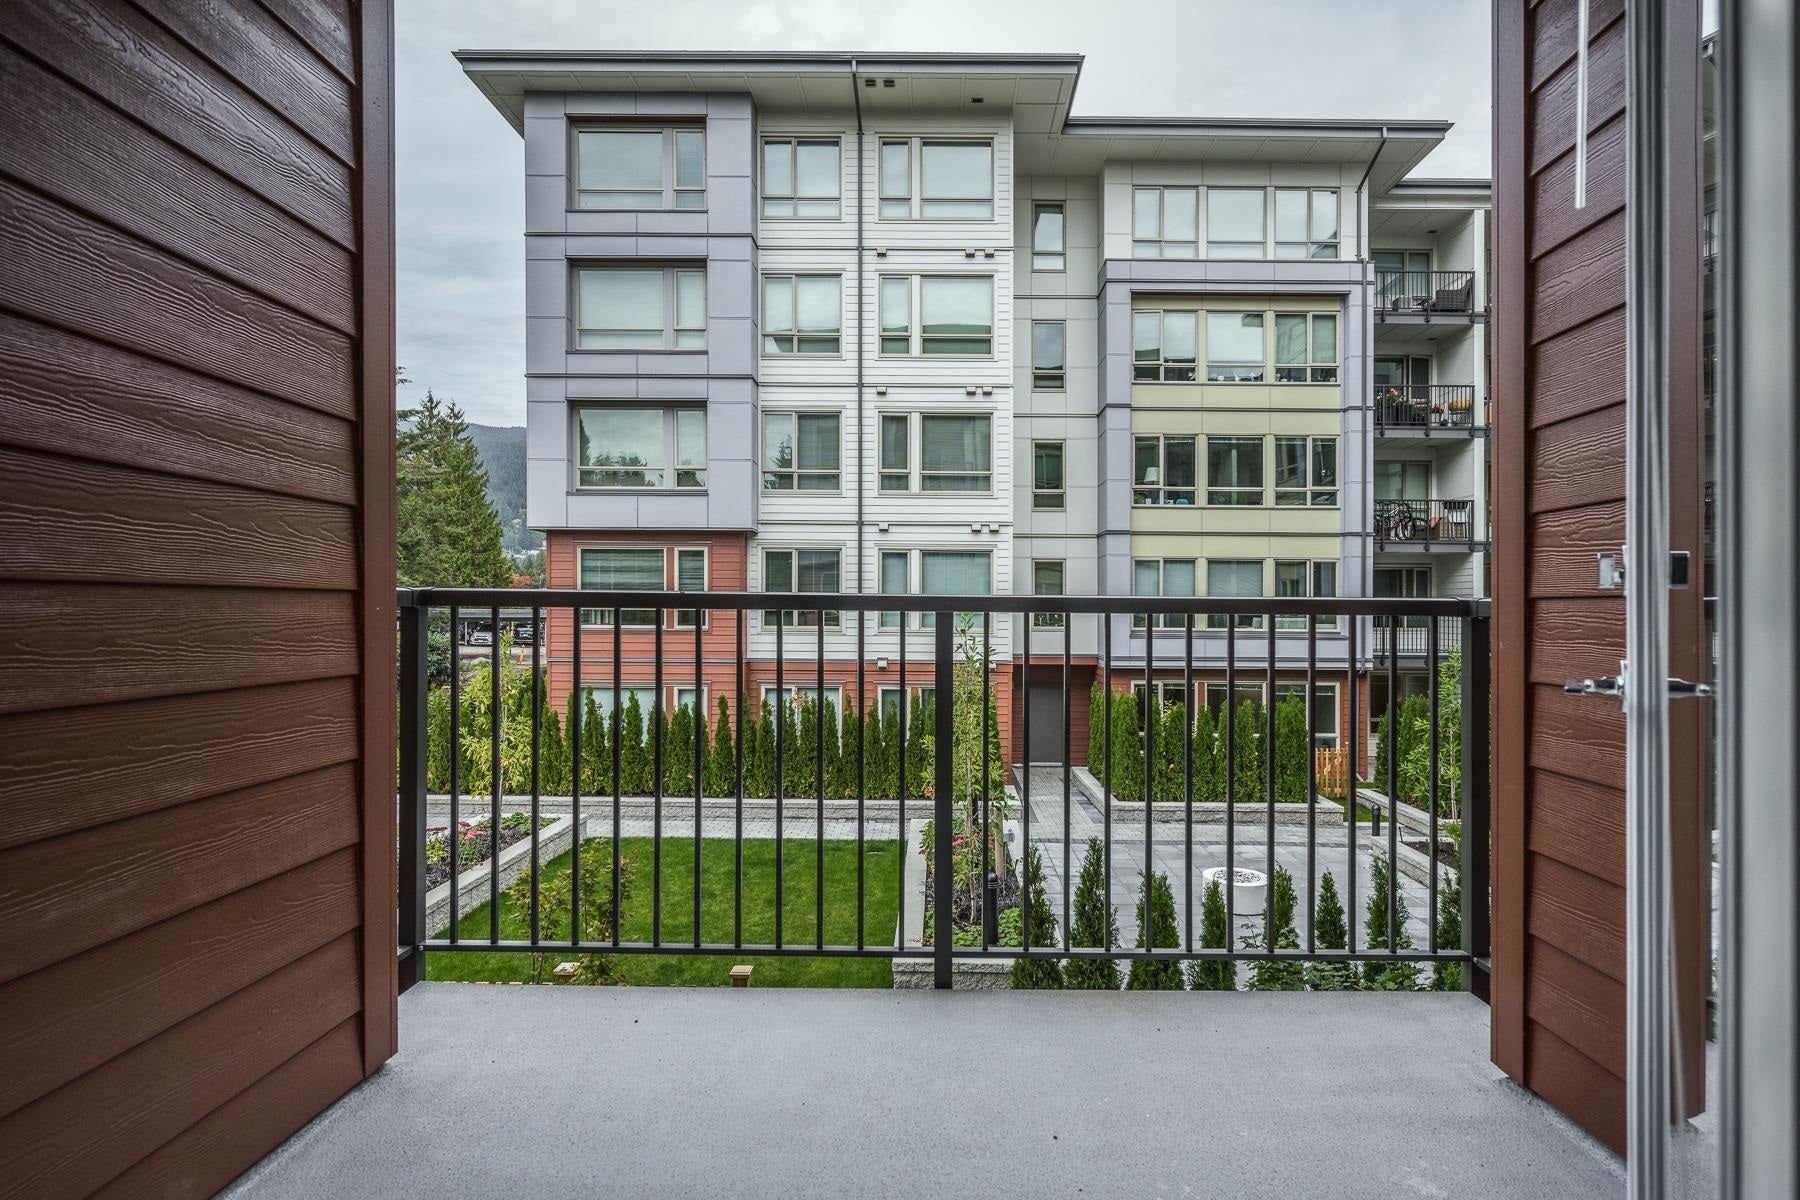 219 2651 LIBRARY LANE - Lynn Valley Apartment/Condo for sale, 2 Bedrooms (R2623232) - #10